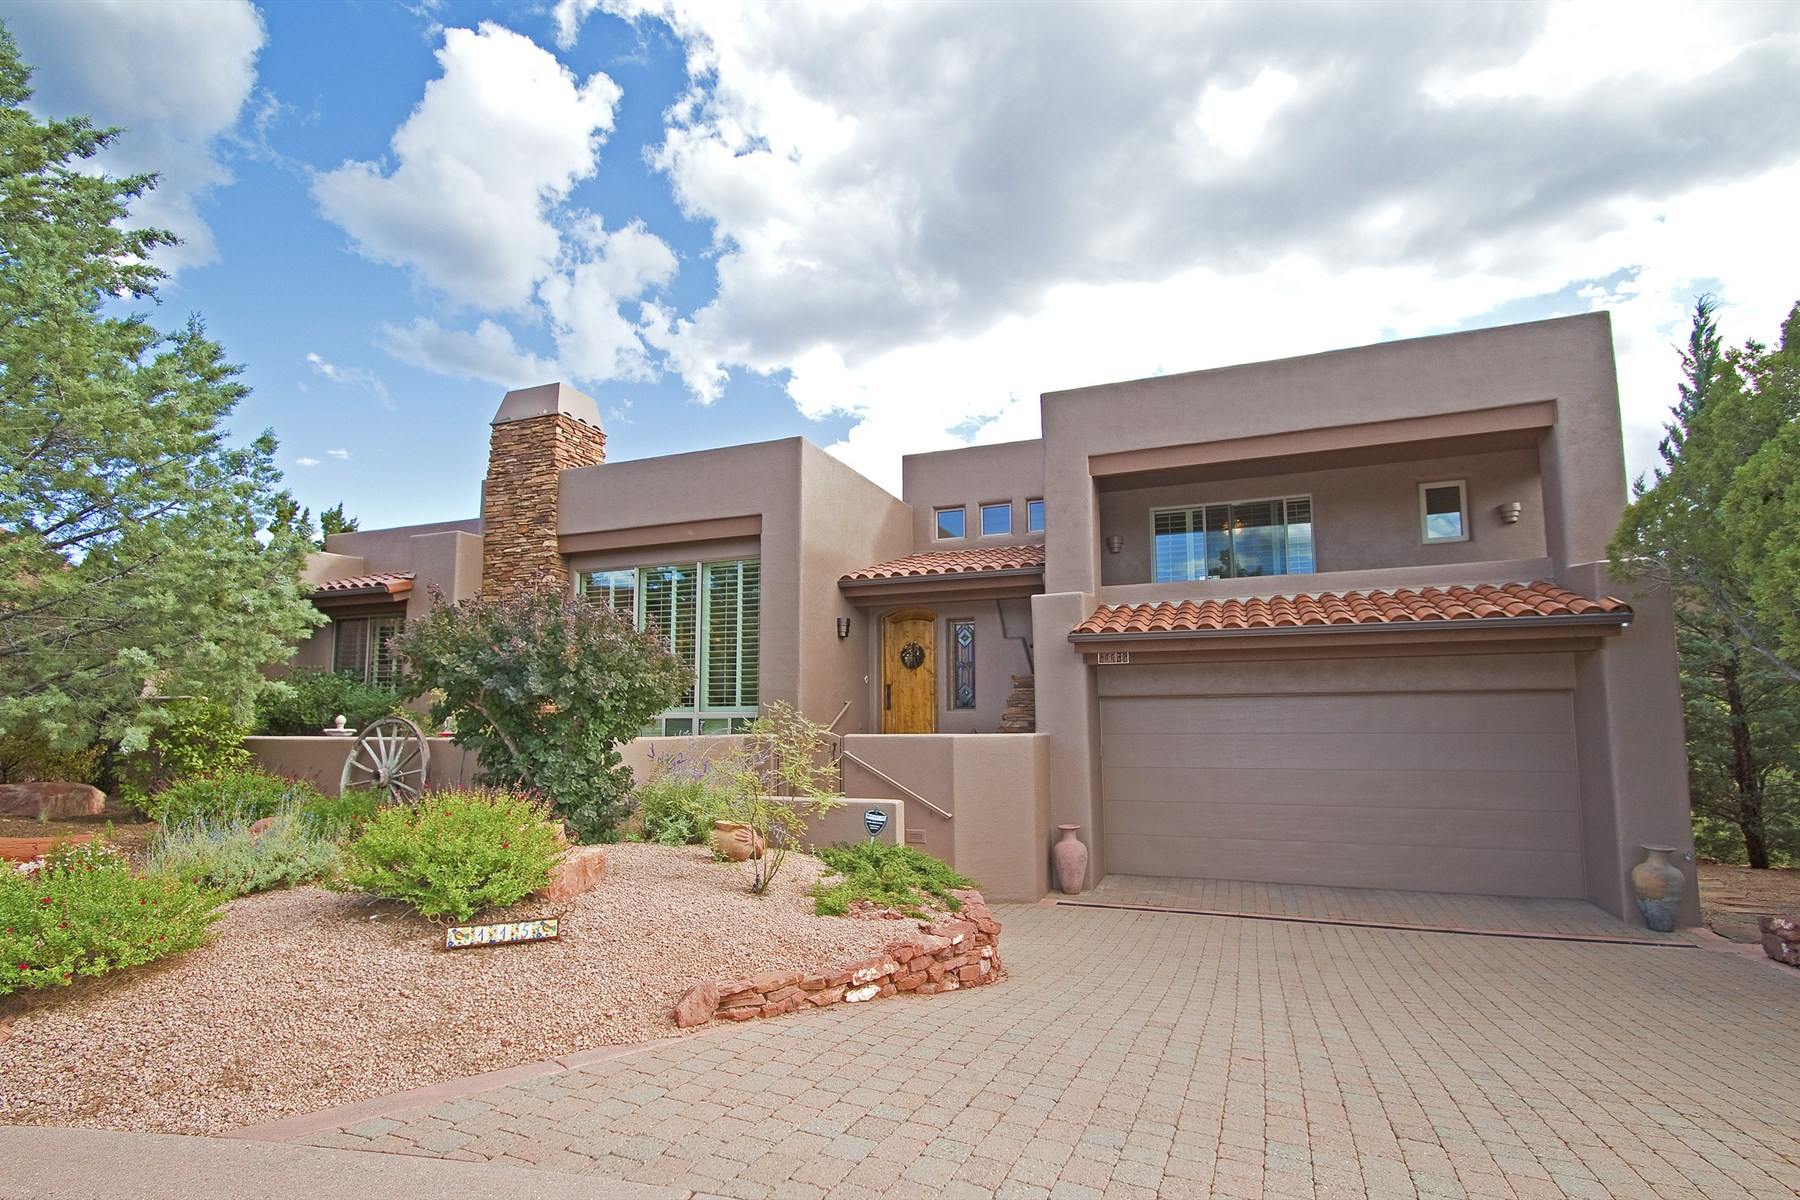 獨棟家庭住宅 為 出售 在 Beautiful home in one of West Sedona's most desirable gated communities 115 Calle Marguerite Sedona, 亞利桑那州, 86336 美國